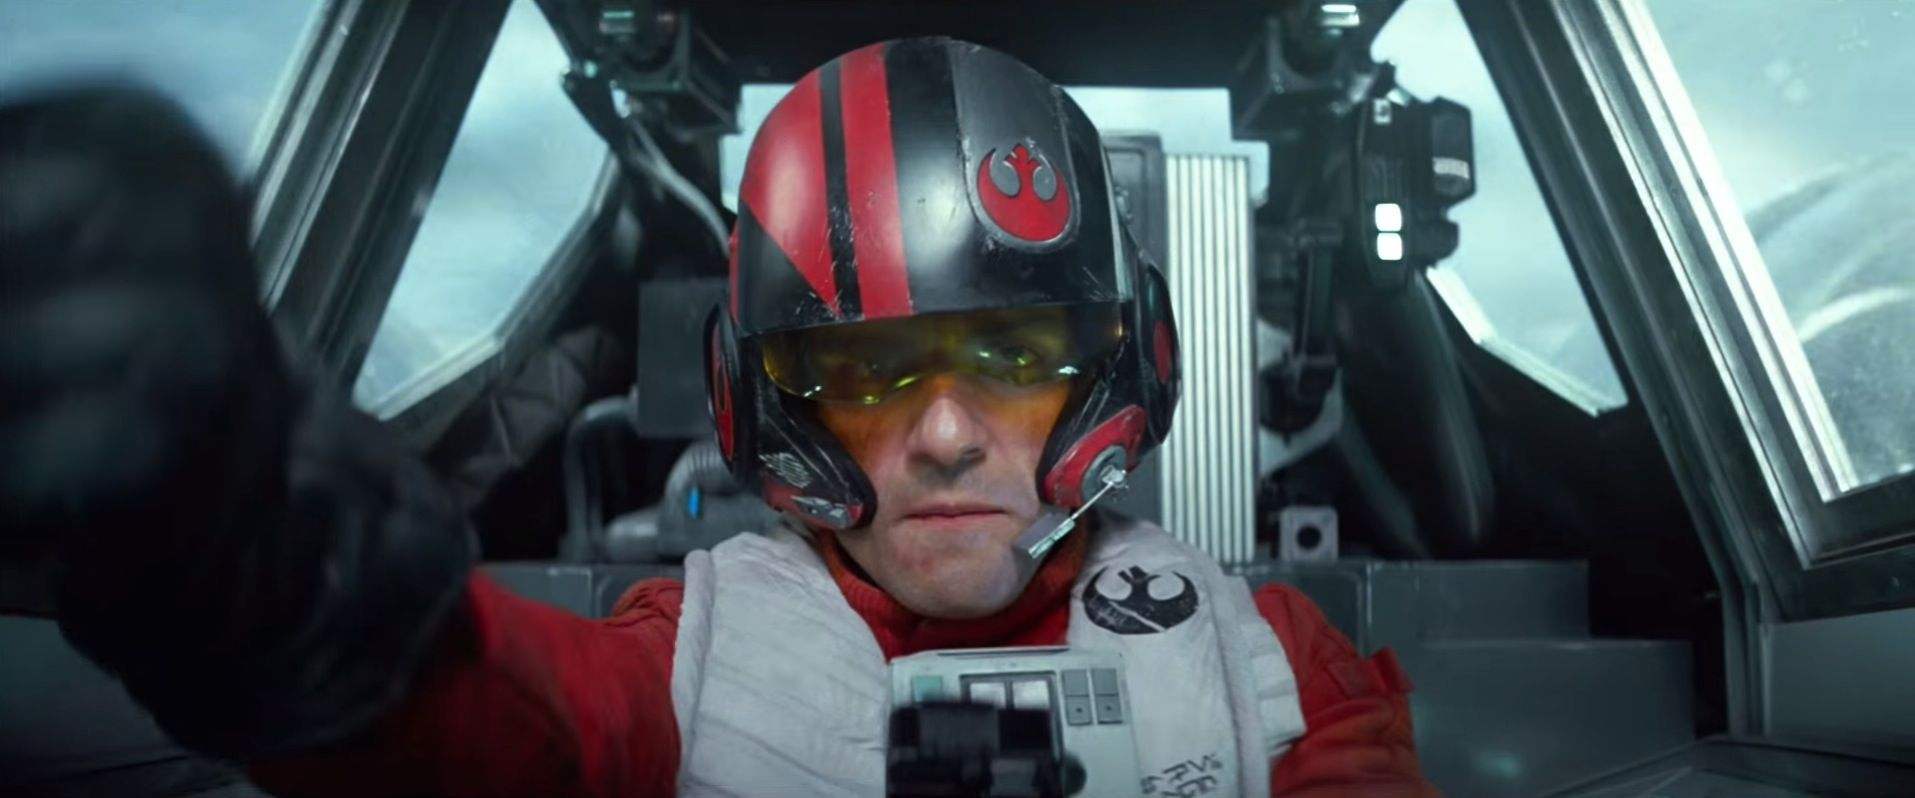 Star Wars' Poe Dameron revealed to have a tie to the original trilogy